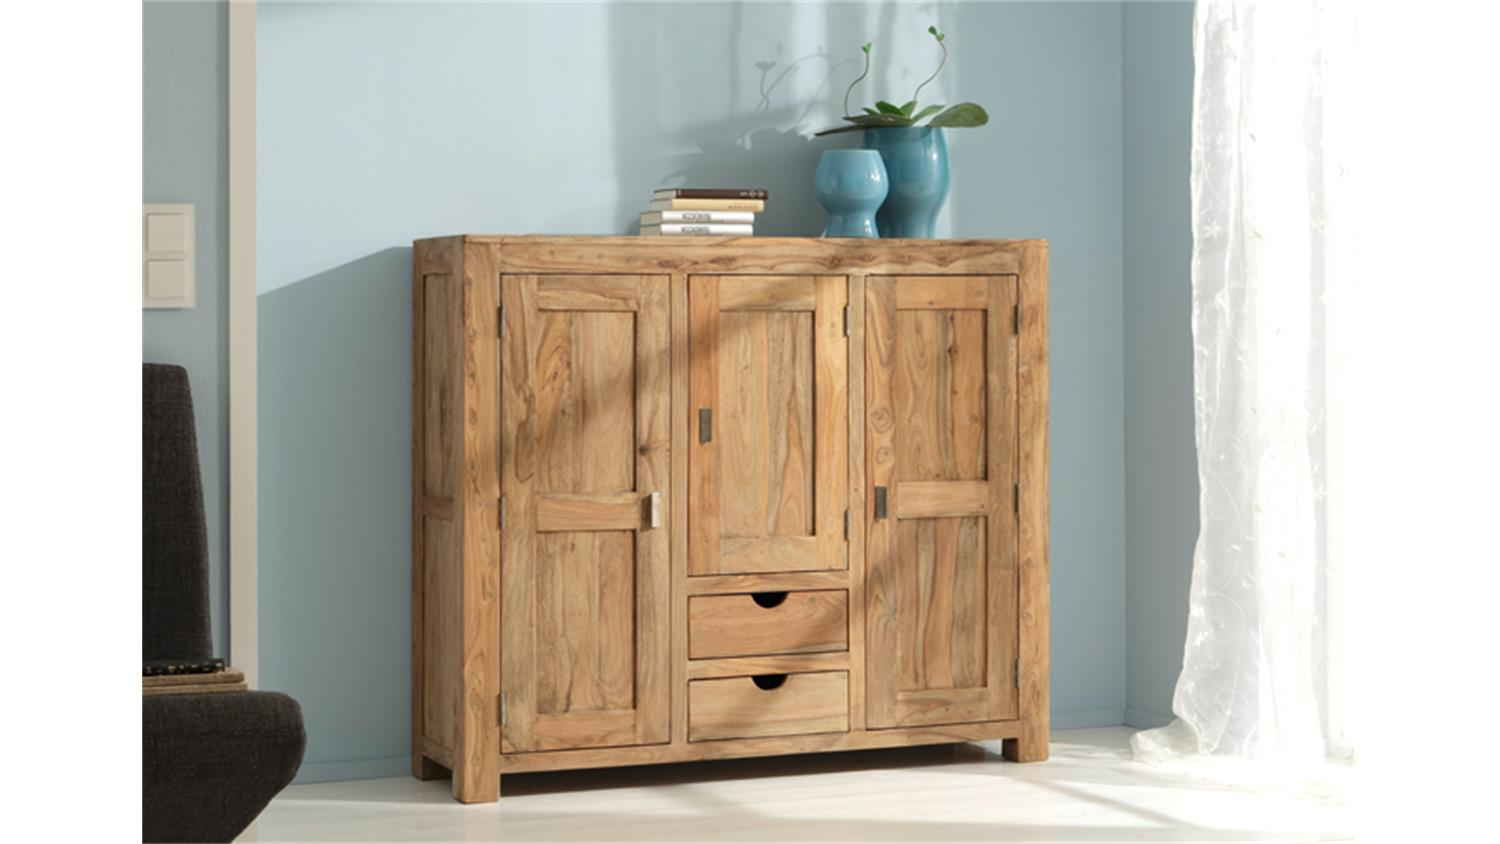 Möbel Landhausstil Natur Highboard Yoga Sheesham Massiv Landhausstil Von Wolf Möbel